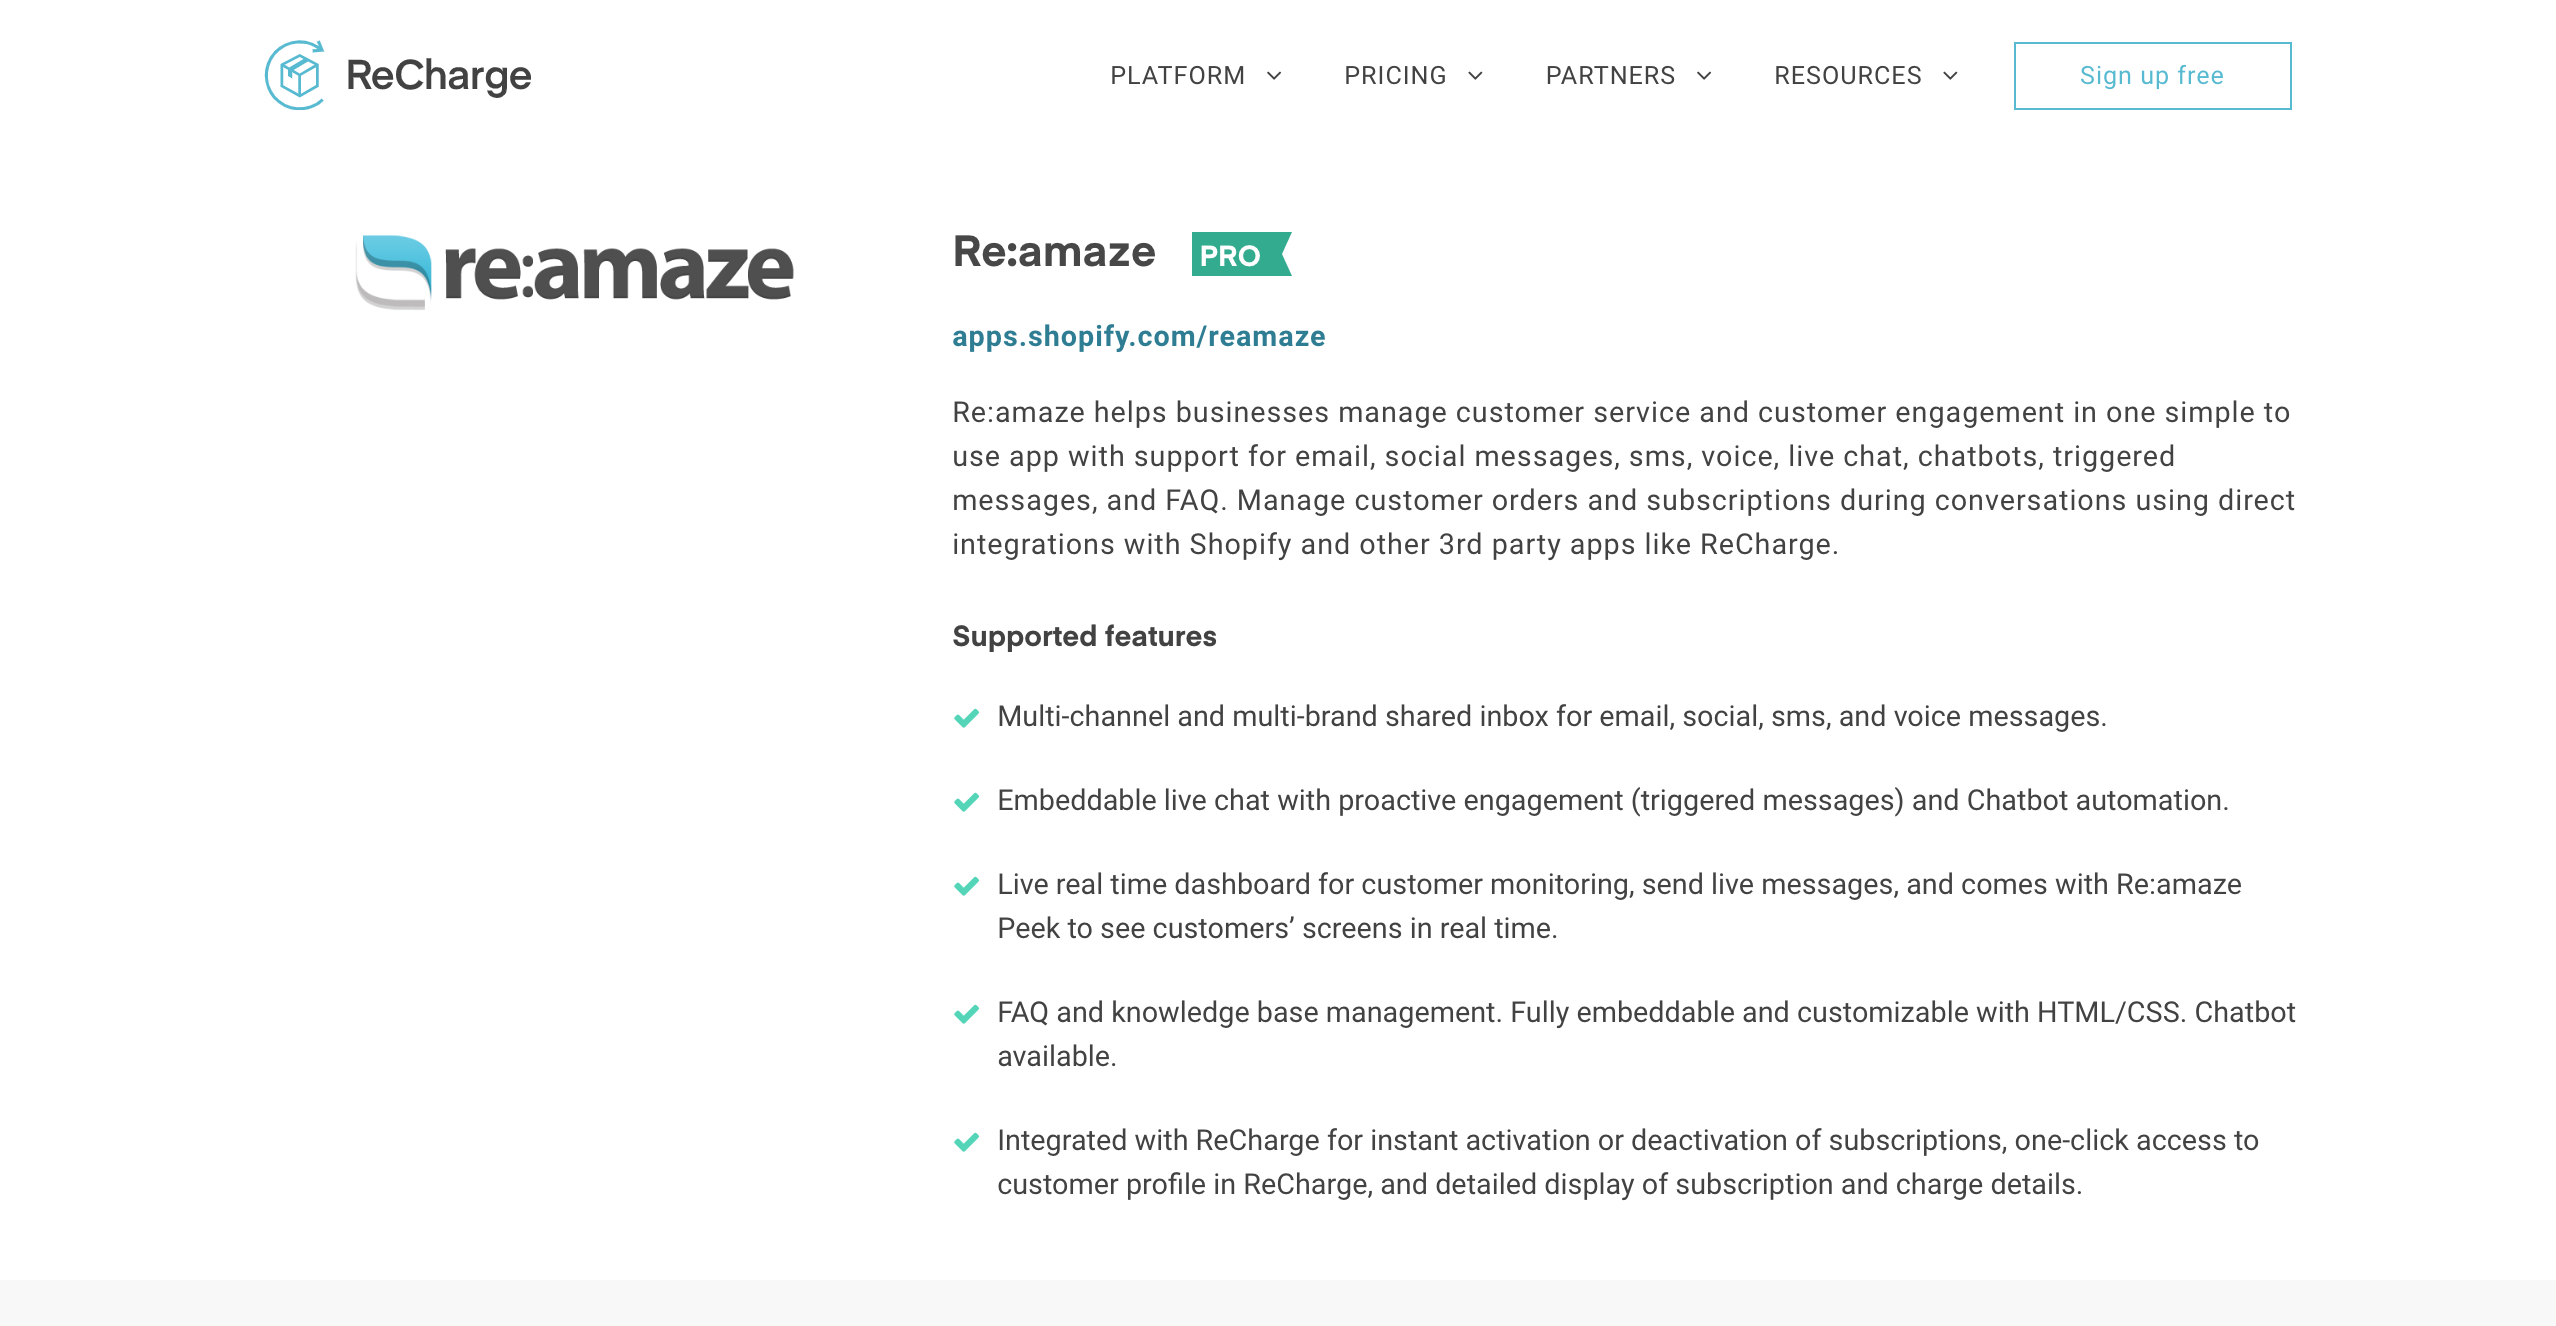 Re:amaze Integrates with ReCharge Payments for Seamless eCommerce